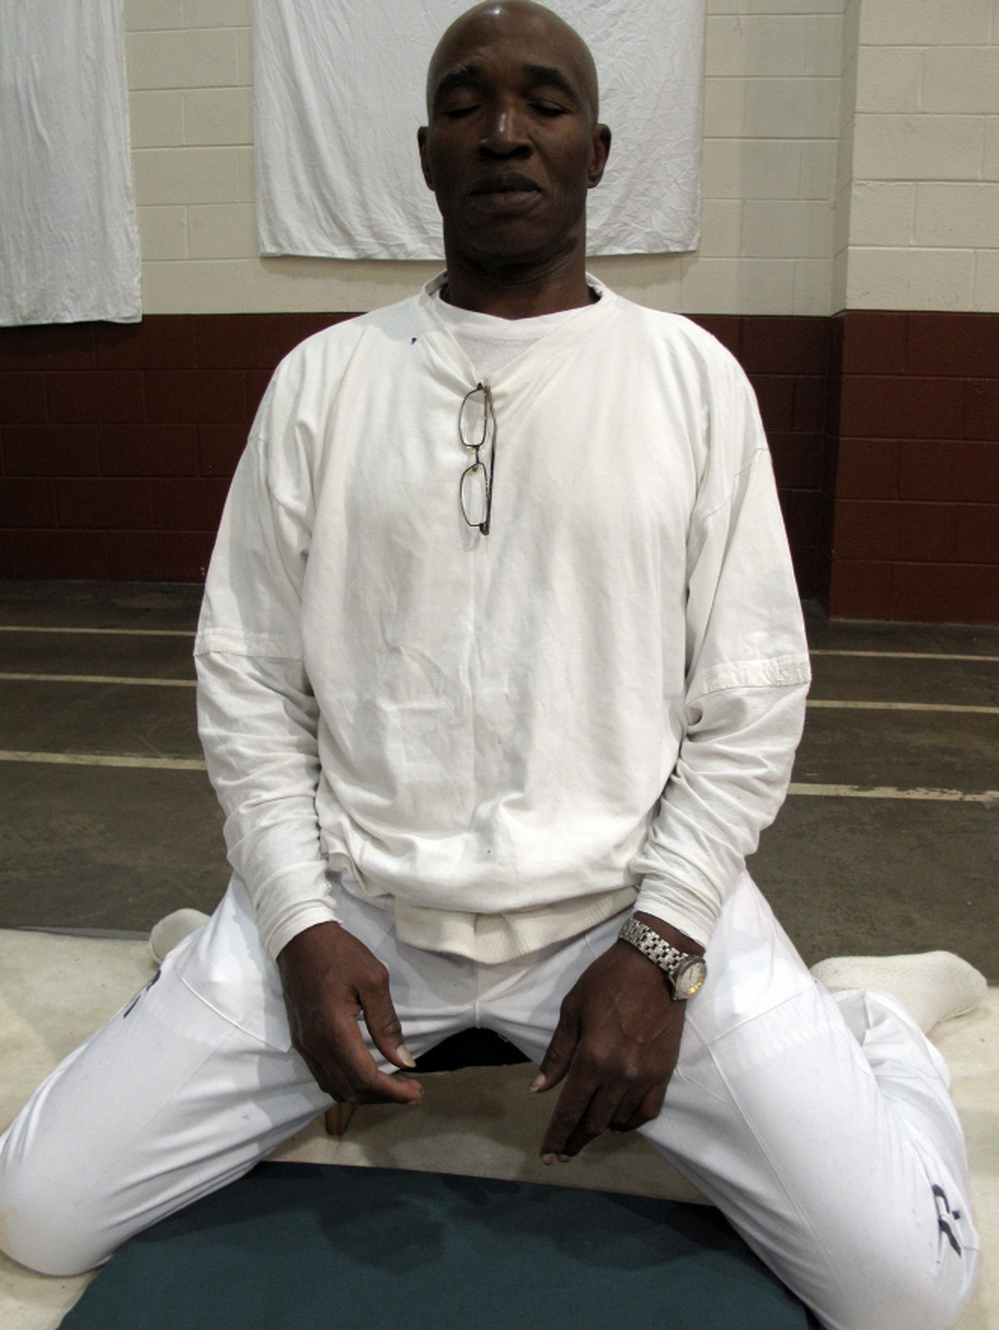 "Convicted murderer Johnny Mack Young in the meditation stance he keeps for nearly 10 hours a day during the 10-day silent meditation course. Officials say the meditation program is reducing violence at Alabama's highest security lockup. ""It changed my life,"" Young says."